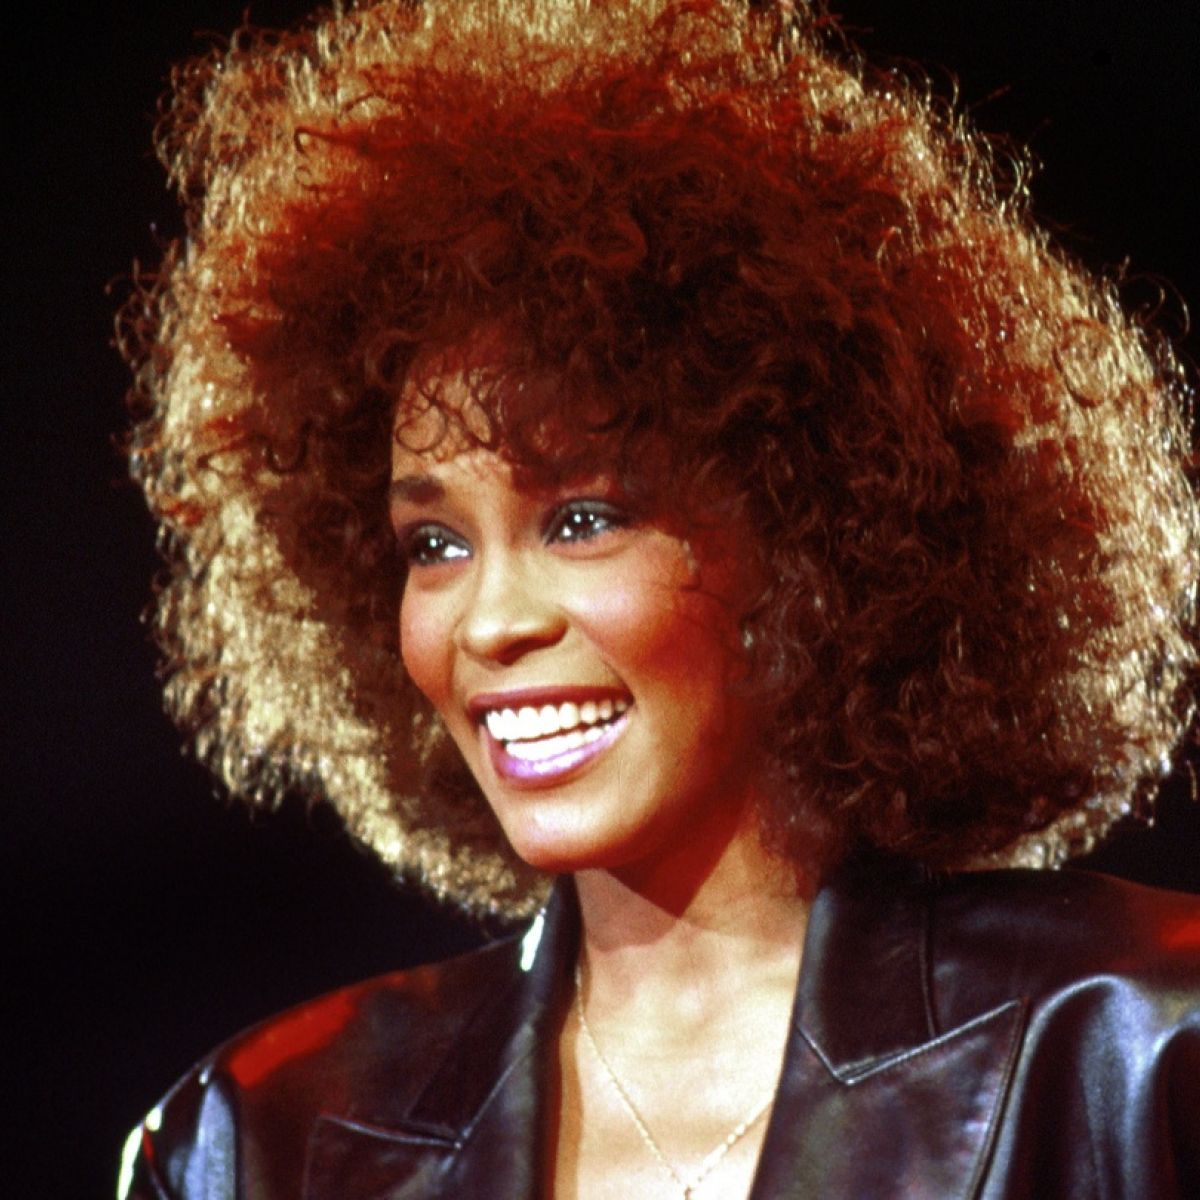 The sad, secret life of Whitney Houston